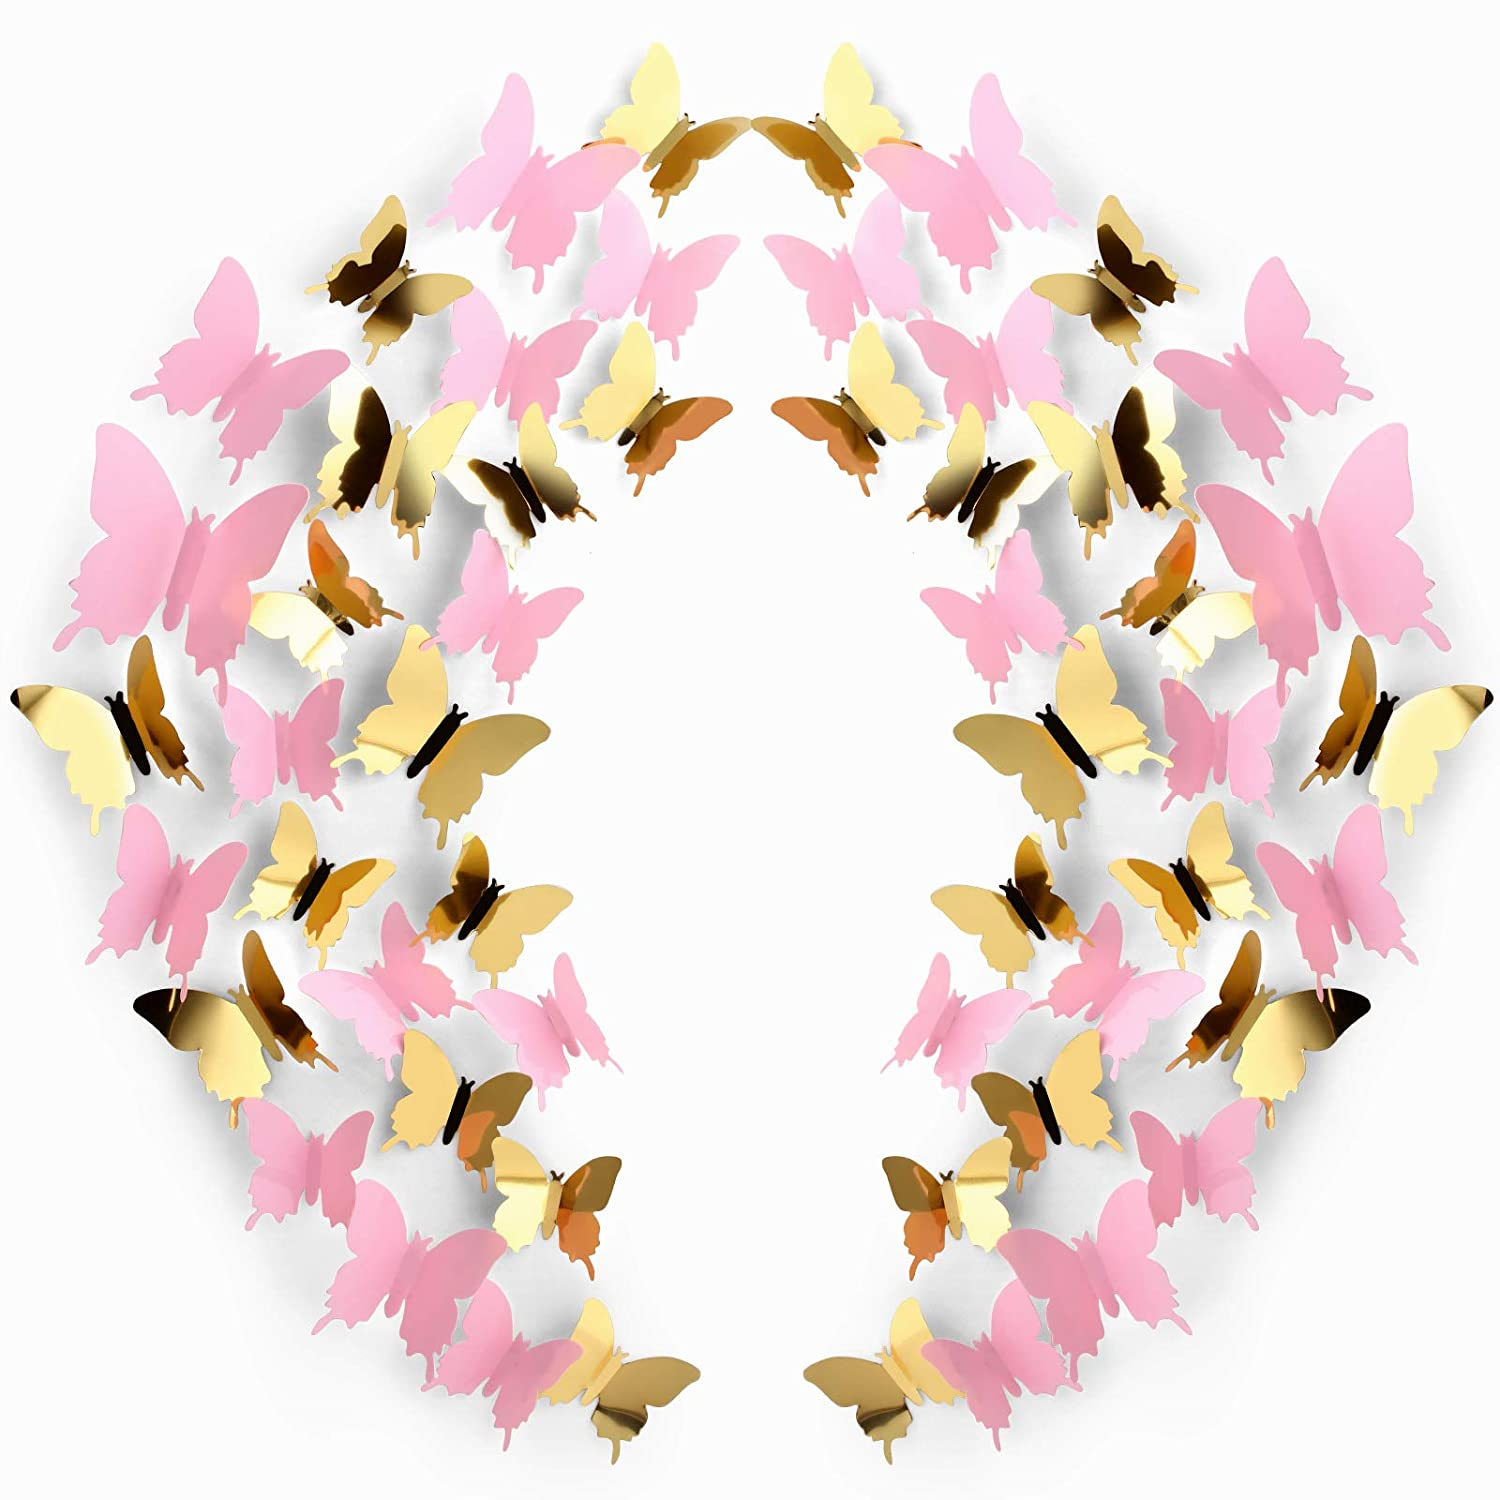 120 Pieces 3D Butterfly Wall Stickers 3 Sizes Removable Butterfly Mural Decals for Baby Kids Room Wedding Home Fridge DIY Art Decor (Pink, Gold)